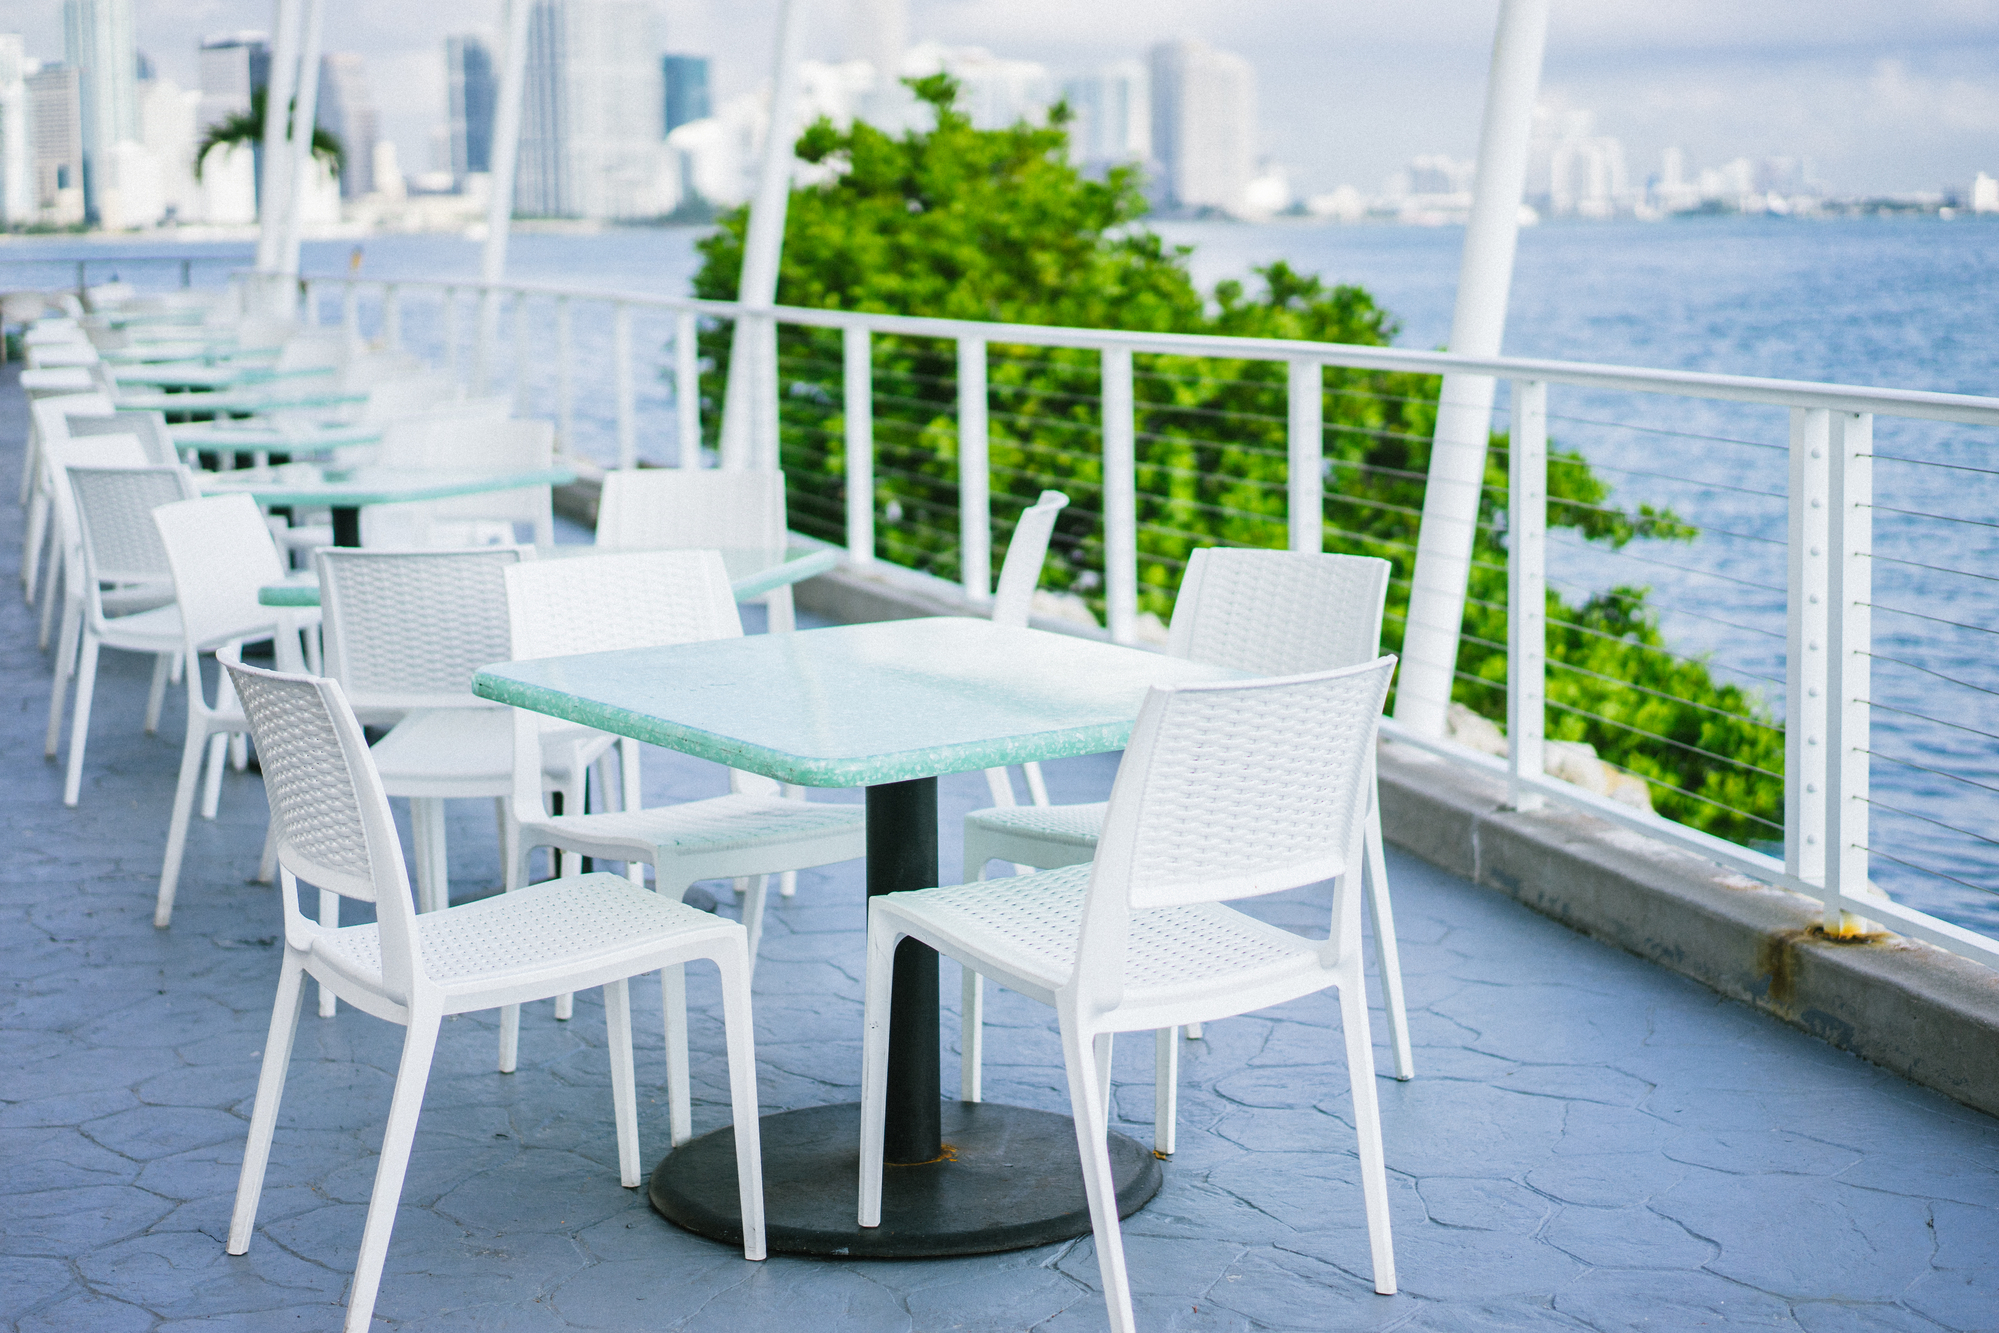 5 of the Best Restaurants with Outdoor Dining in South Florida